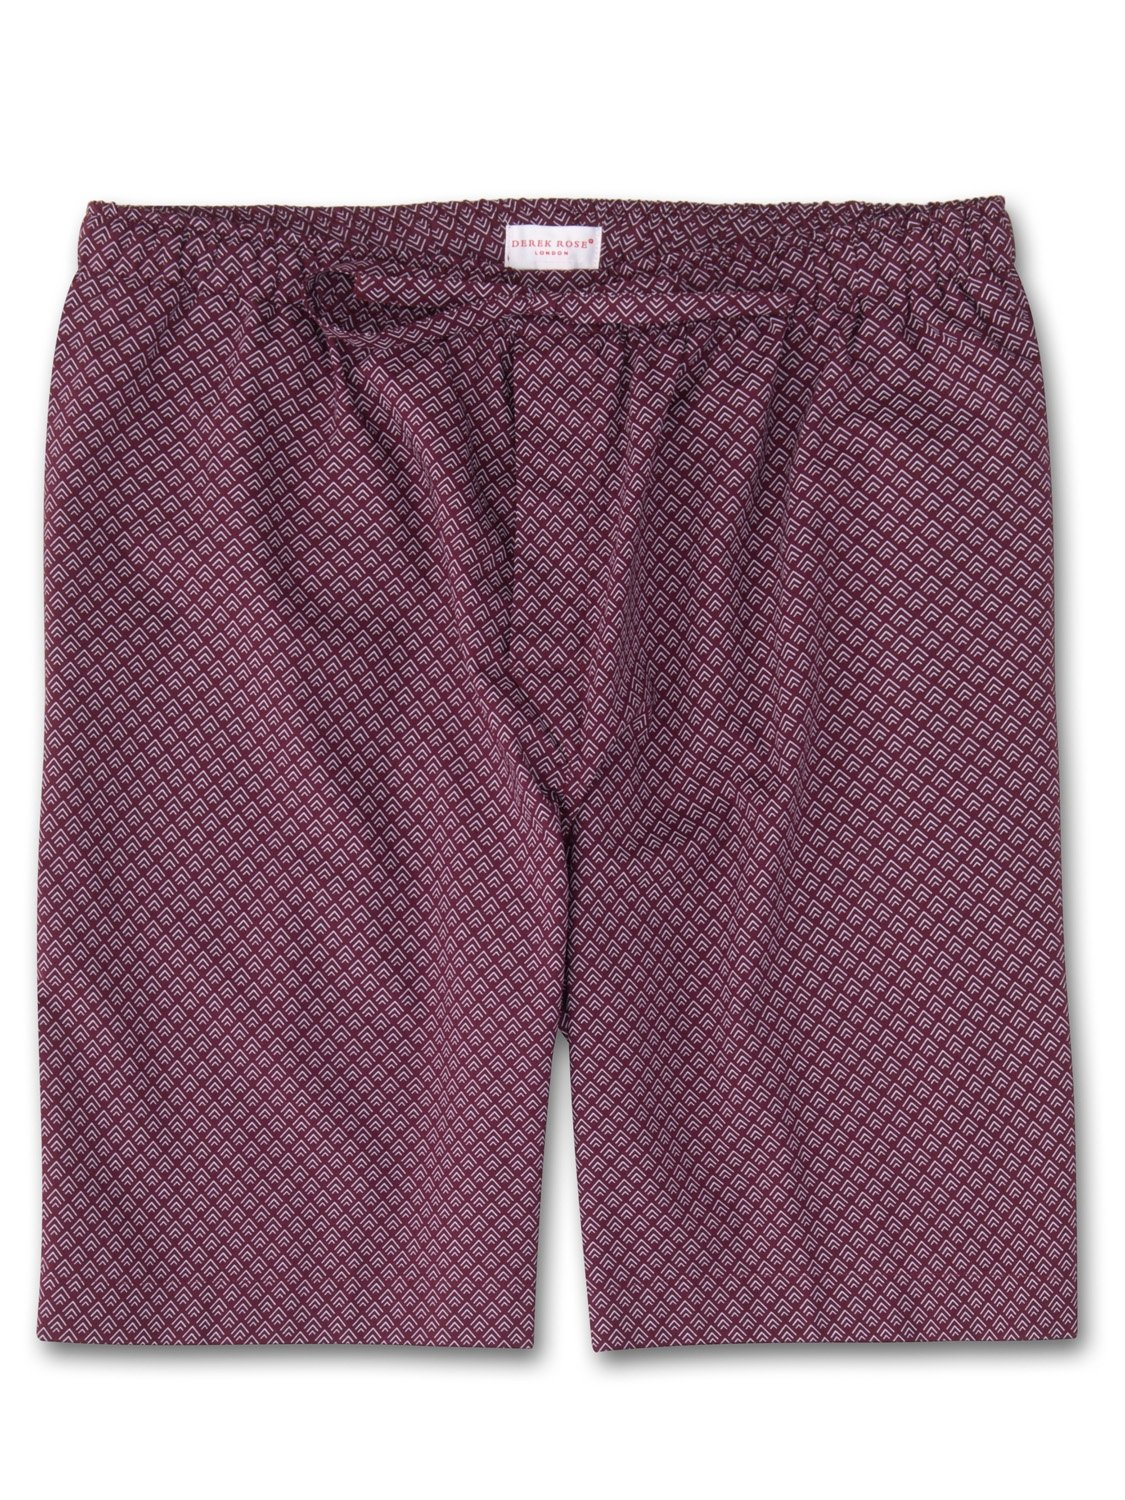 Men's Lounge Shorts Nelson 66 Cotton Batiste Burgundy